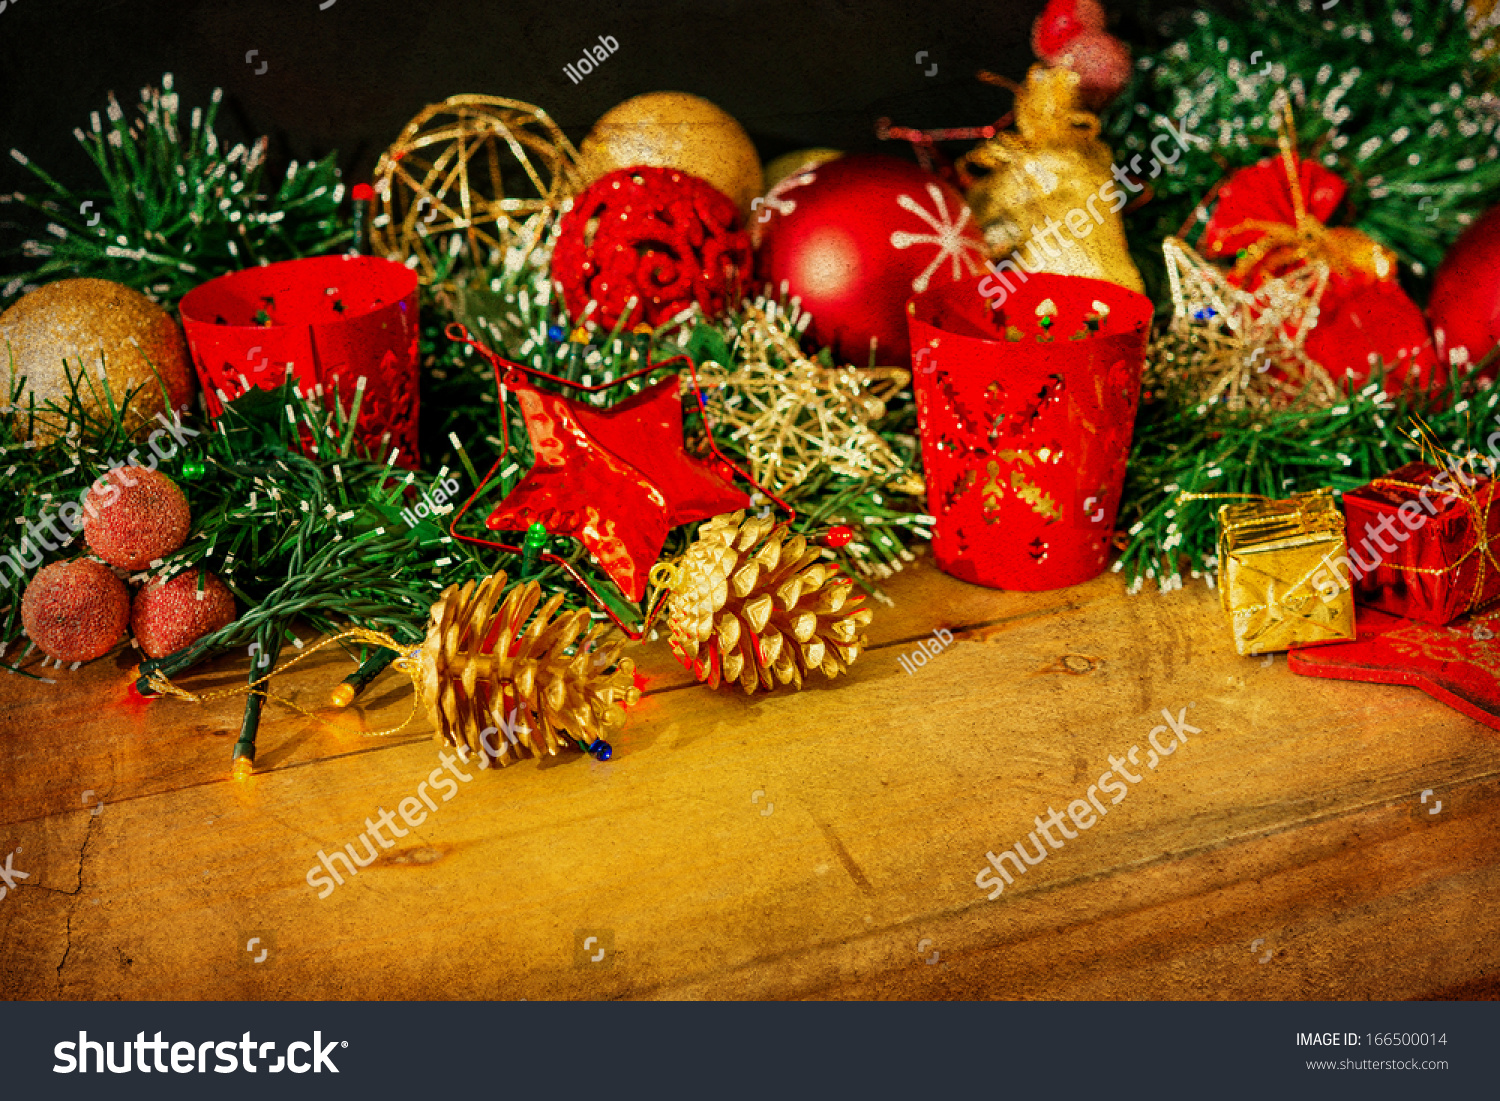 Old Fashioned Antique Christmas Decoration Stock Photo 166500014 ...